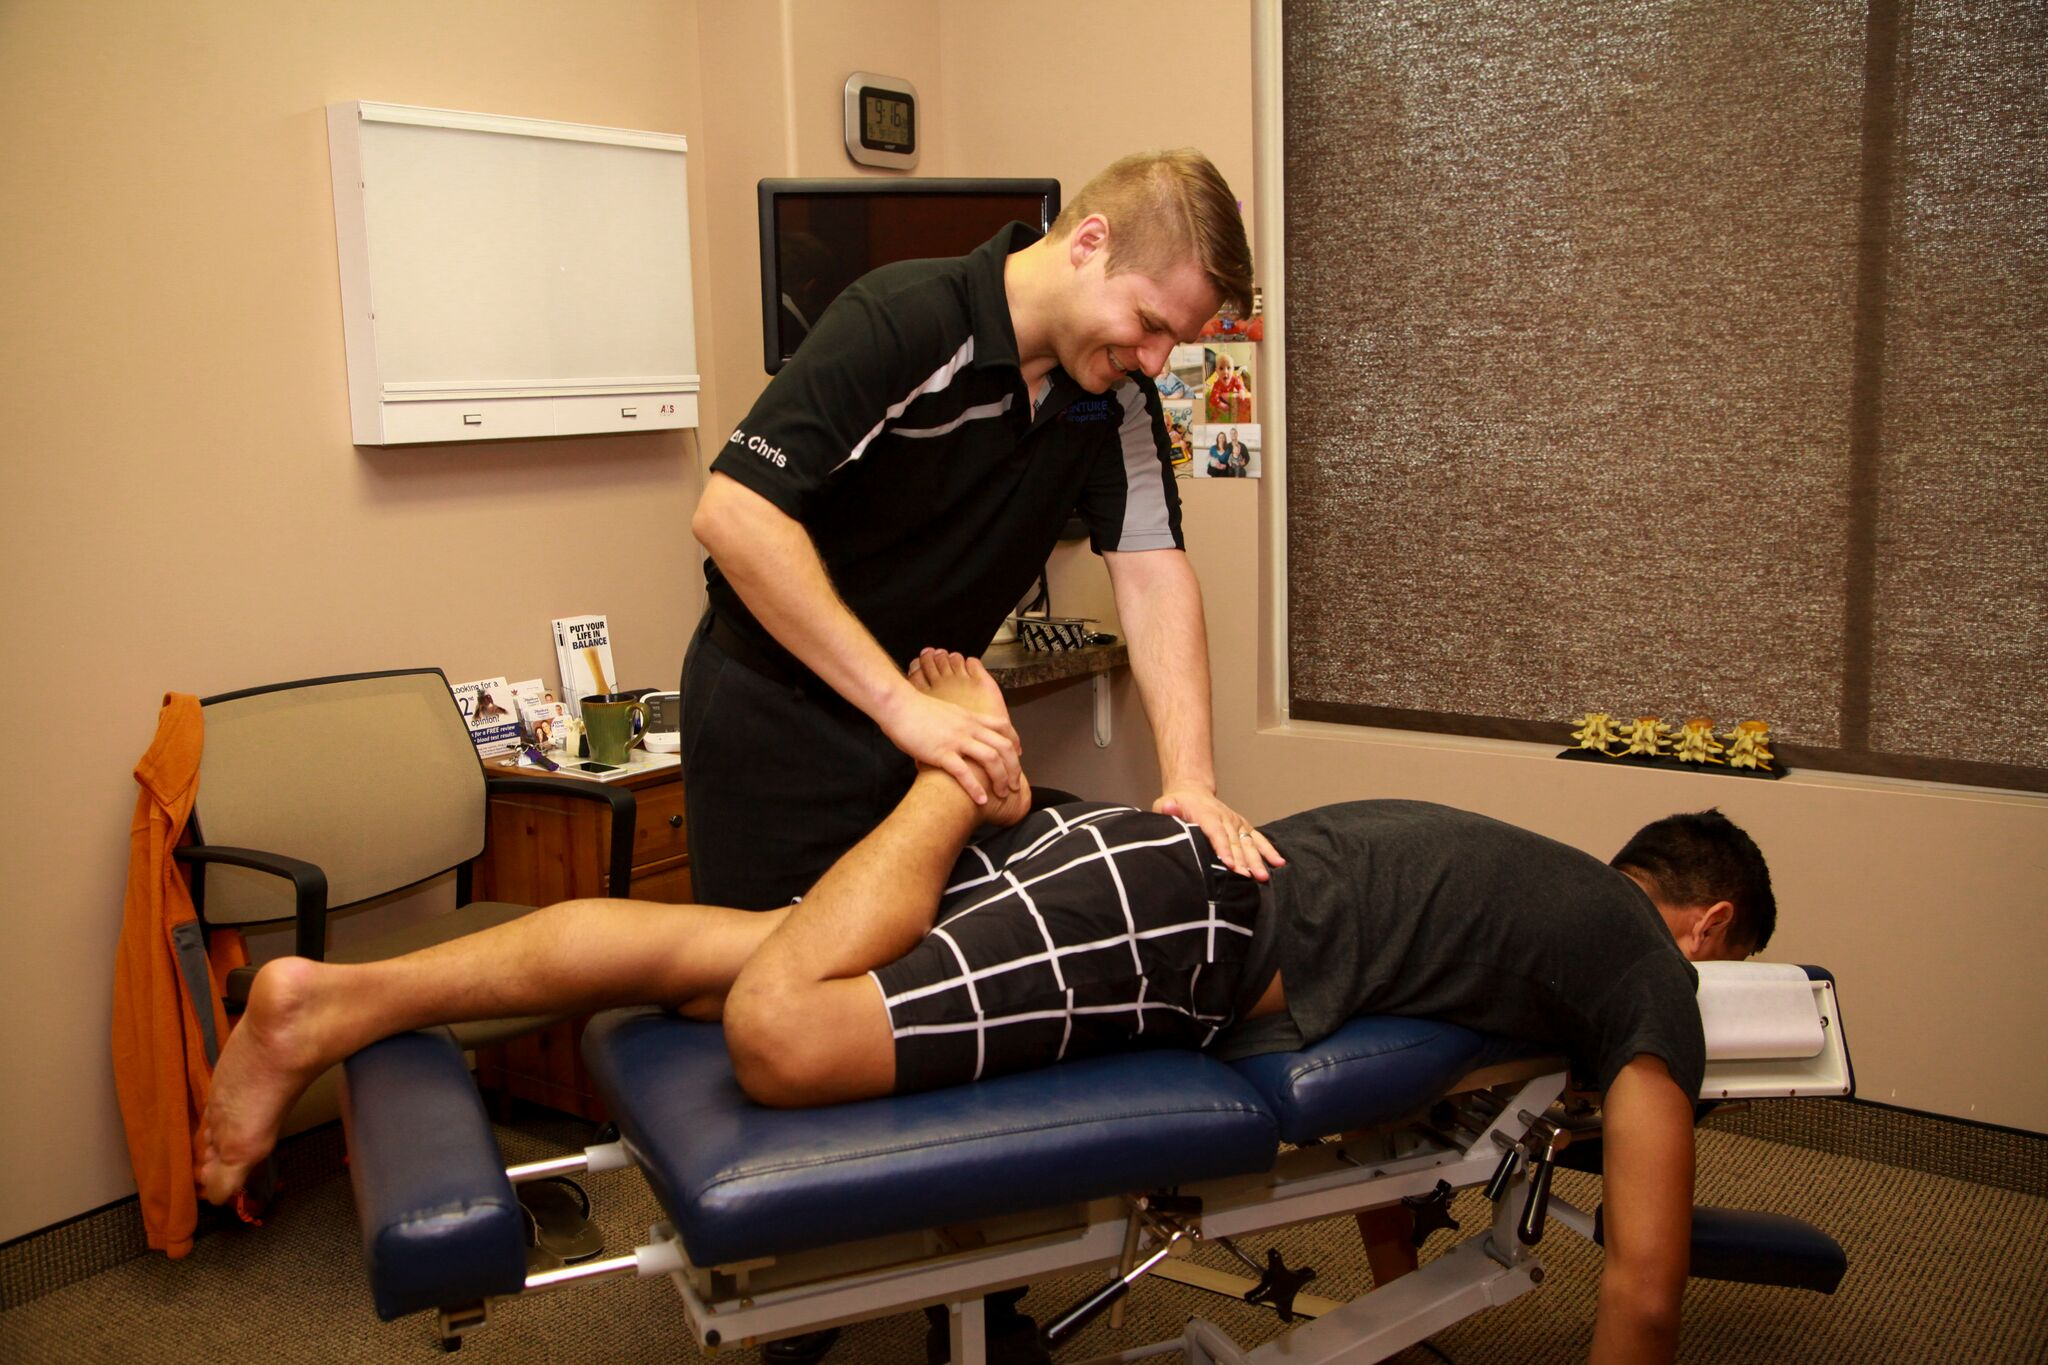 Did you know Chiropractors have Specialties too?